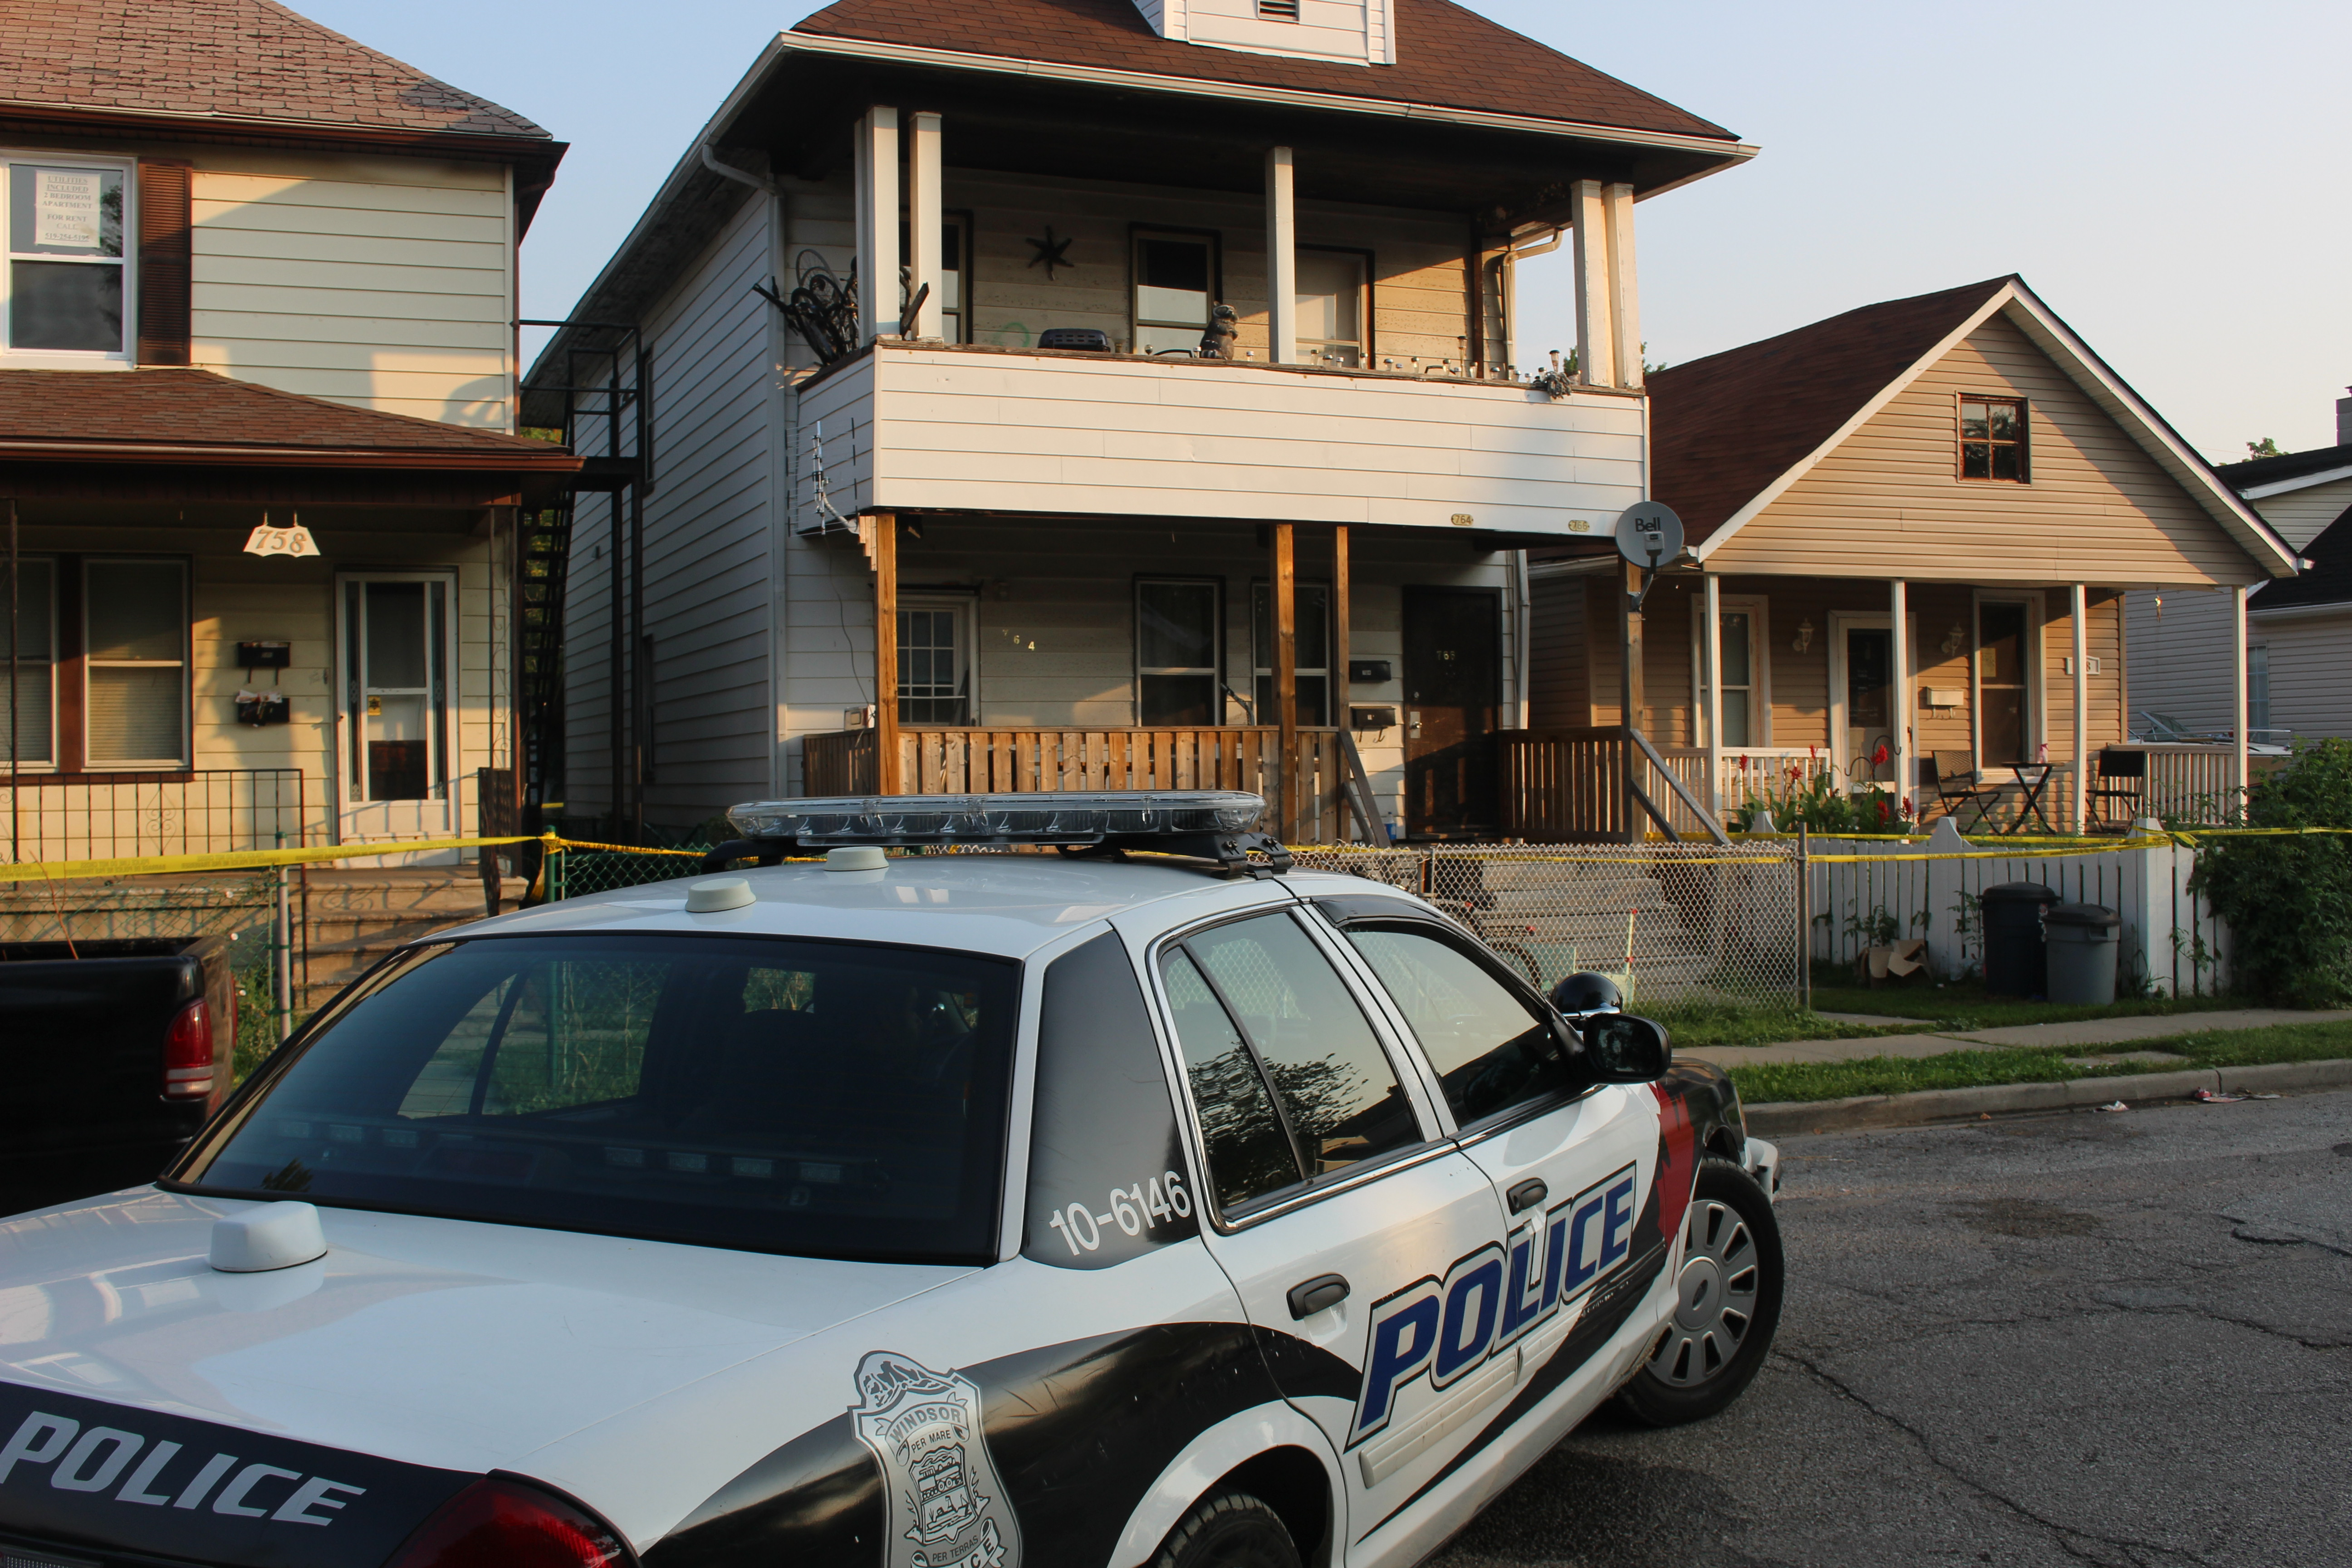 Windsor police investigate a homicide at 764-766 Brant St. September 2, 2015. (Photo by Adelle Loiselle)